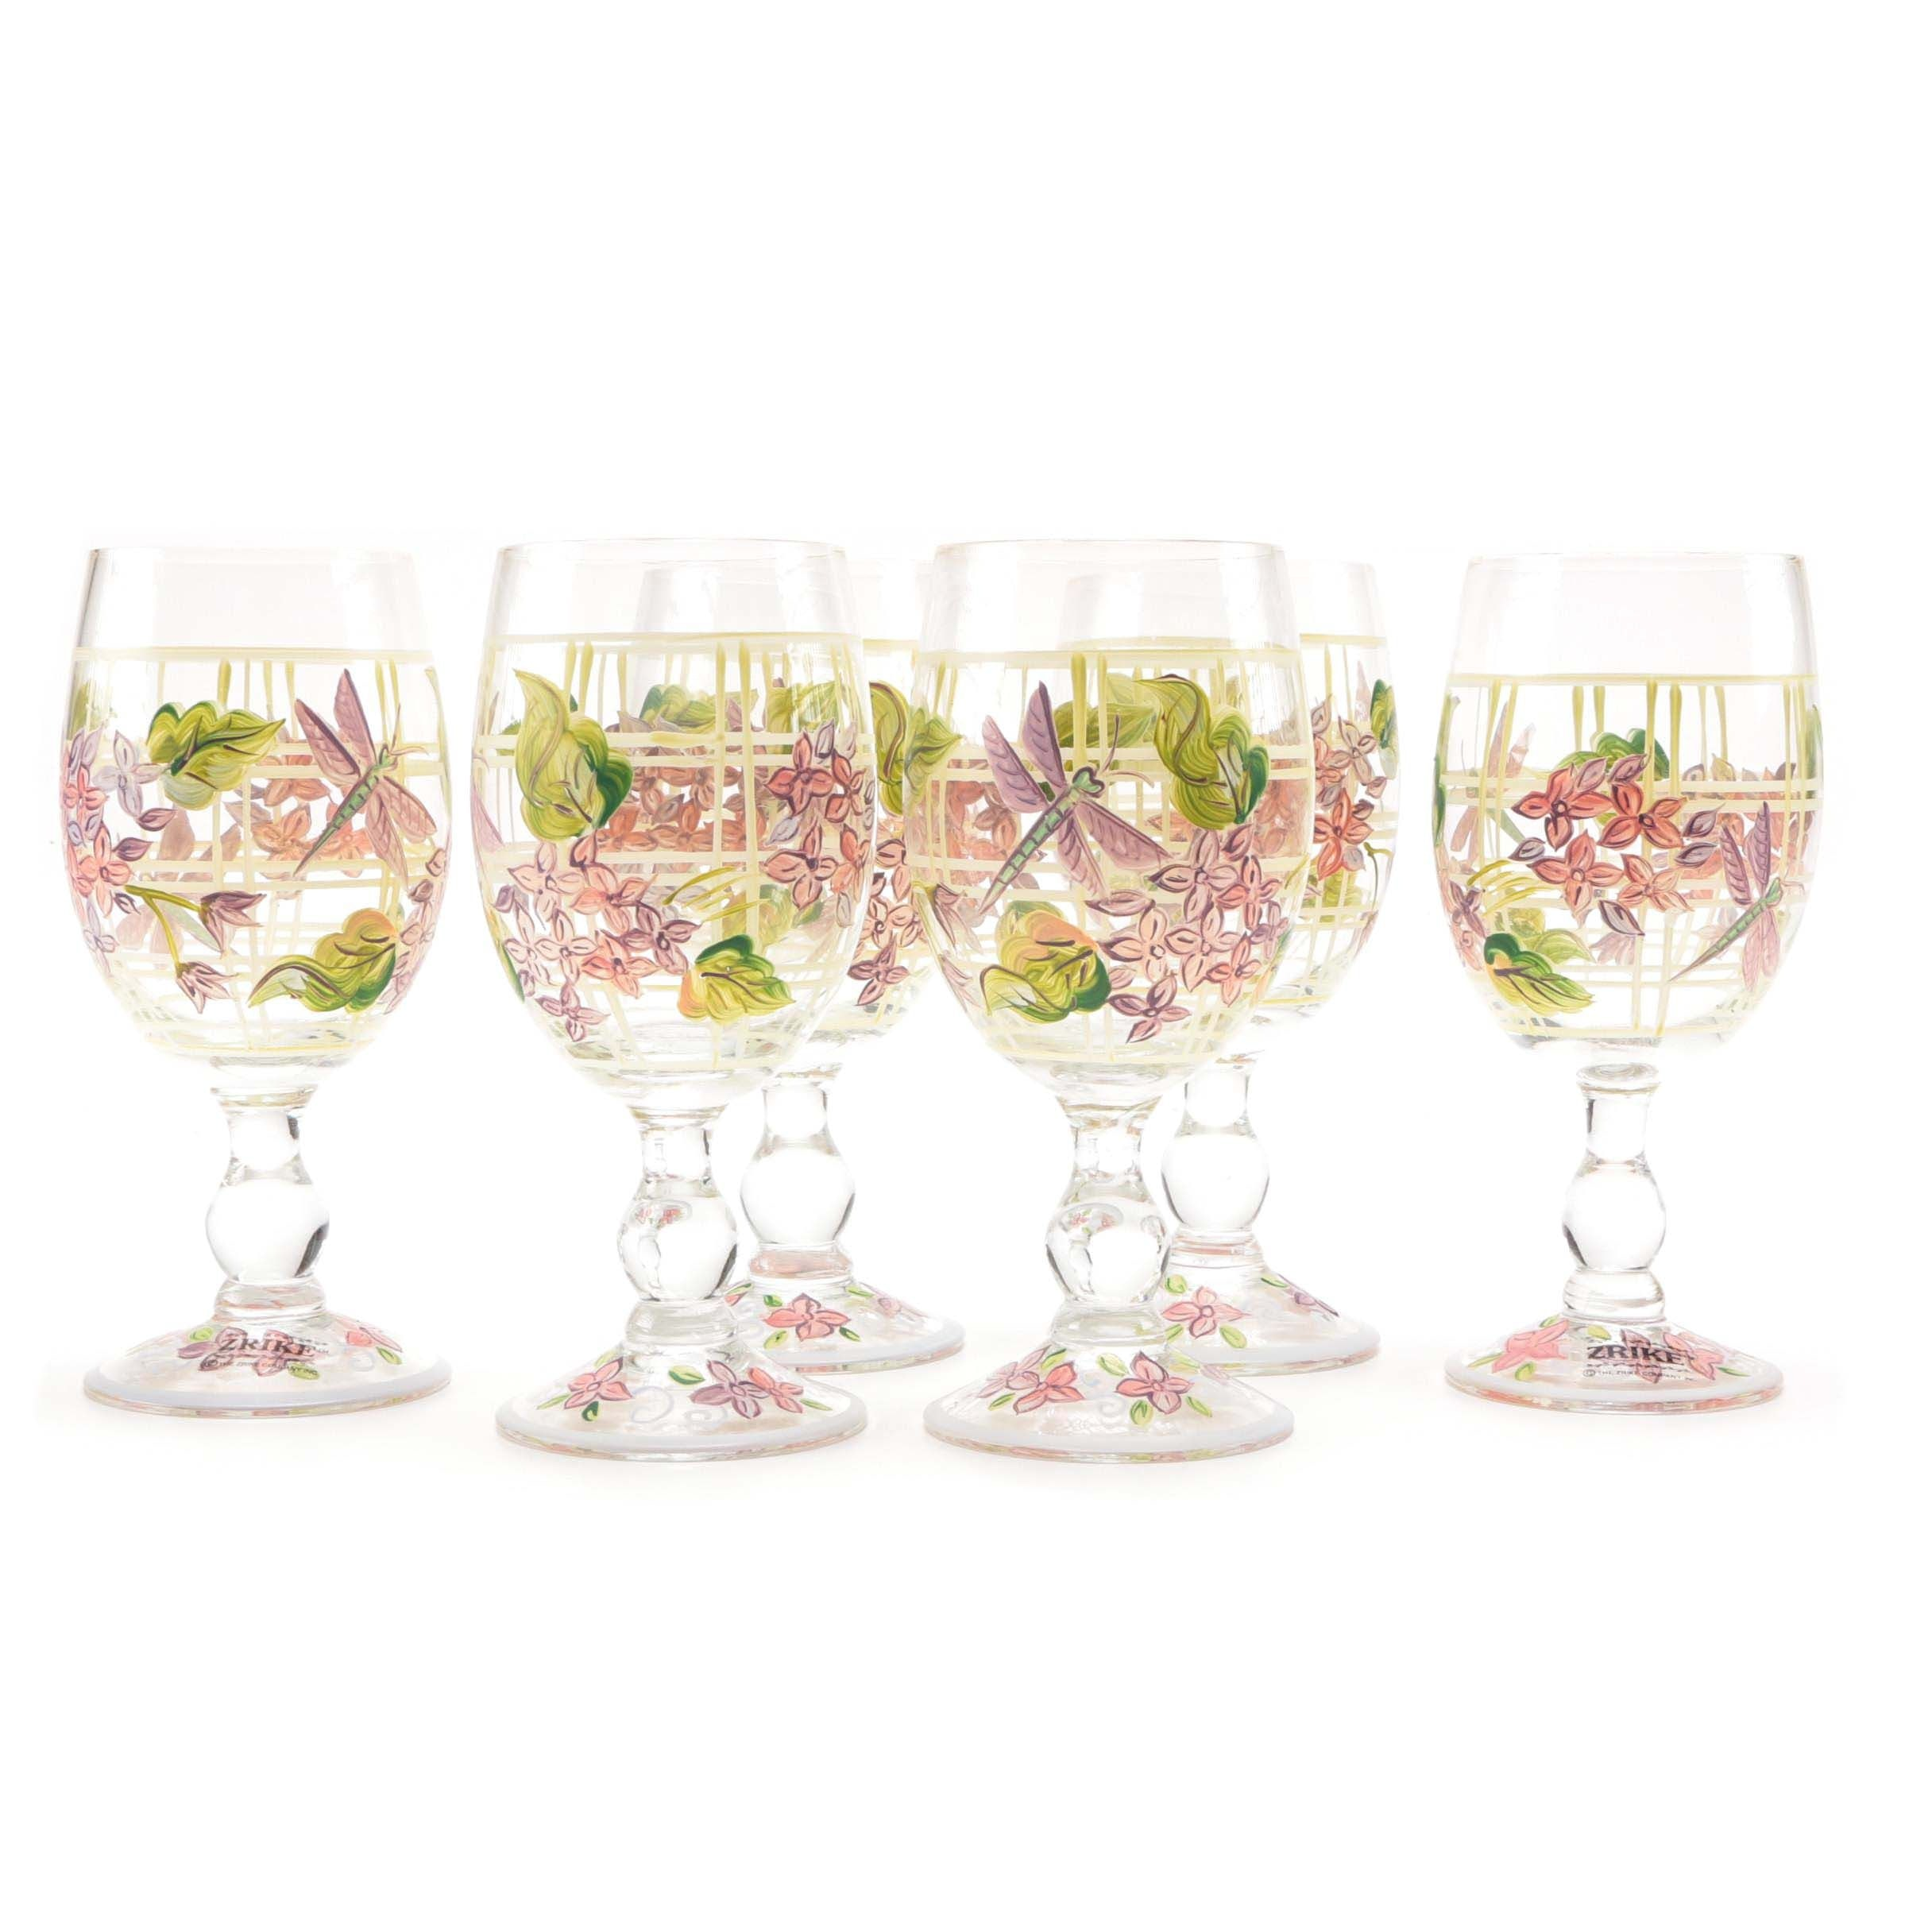 Zrike Painted Goblets